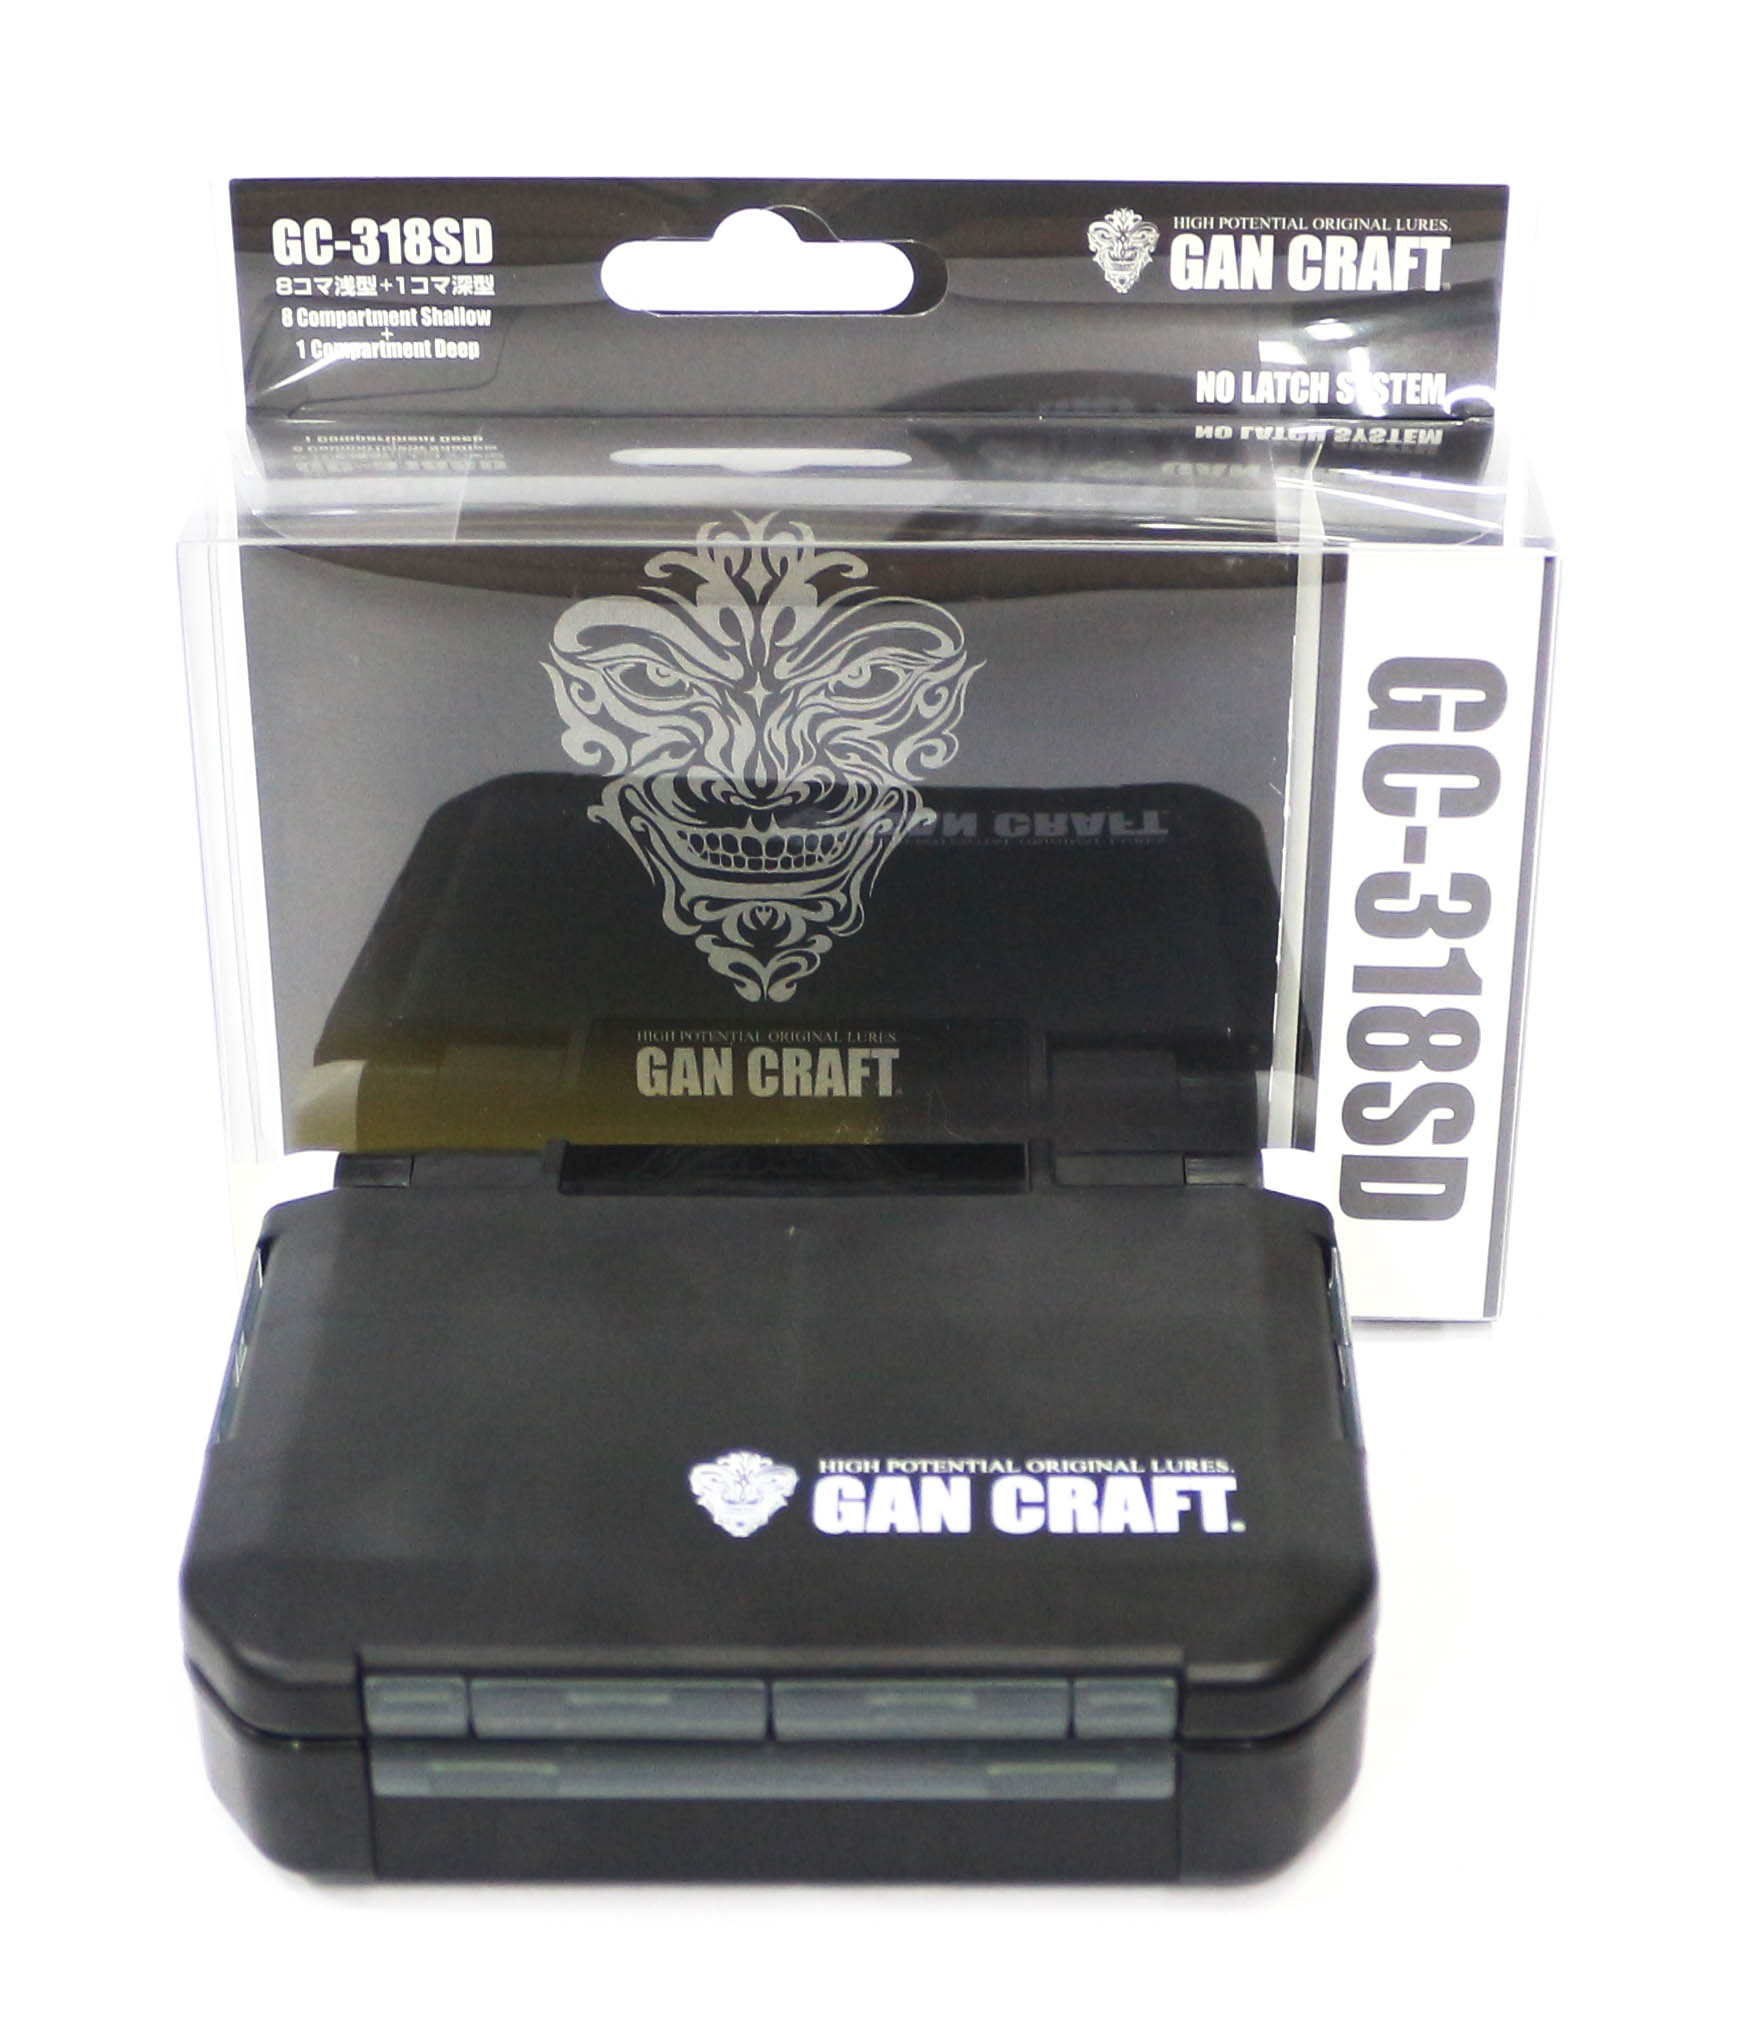 Gan Craft GC-318 SD Tackle Lure Box Case 122 x 87 x 34 mm Black (8908)